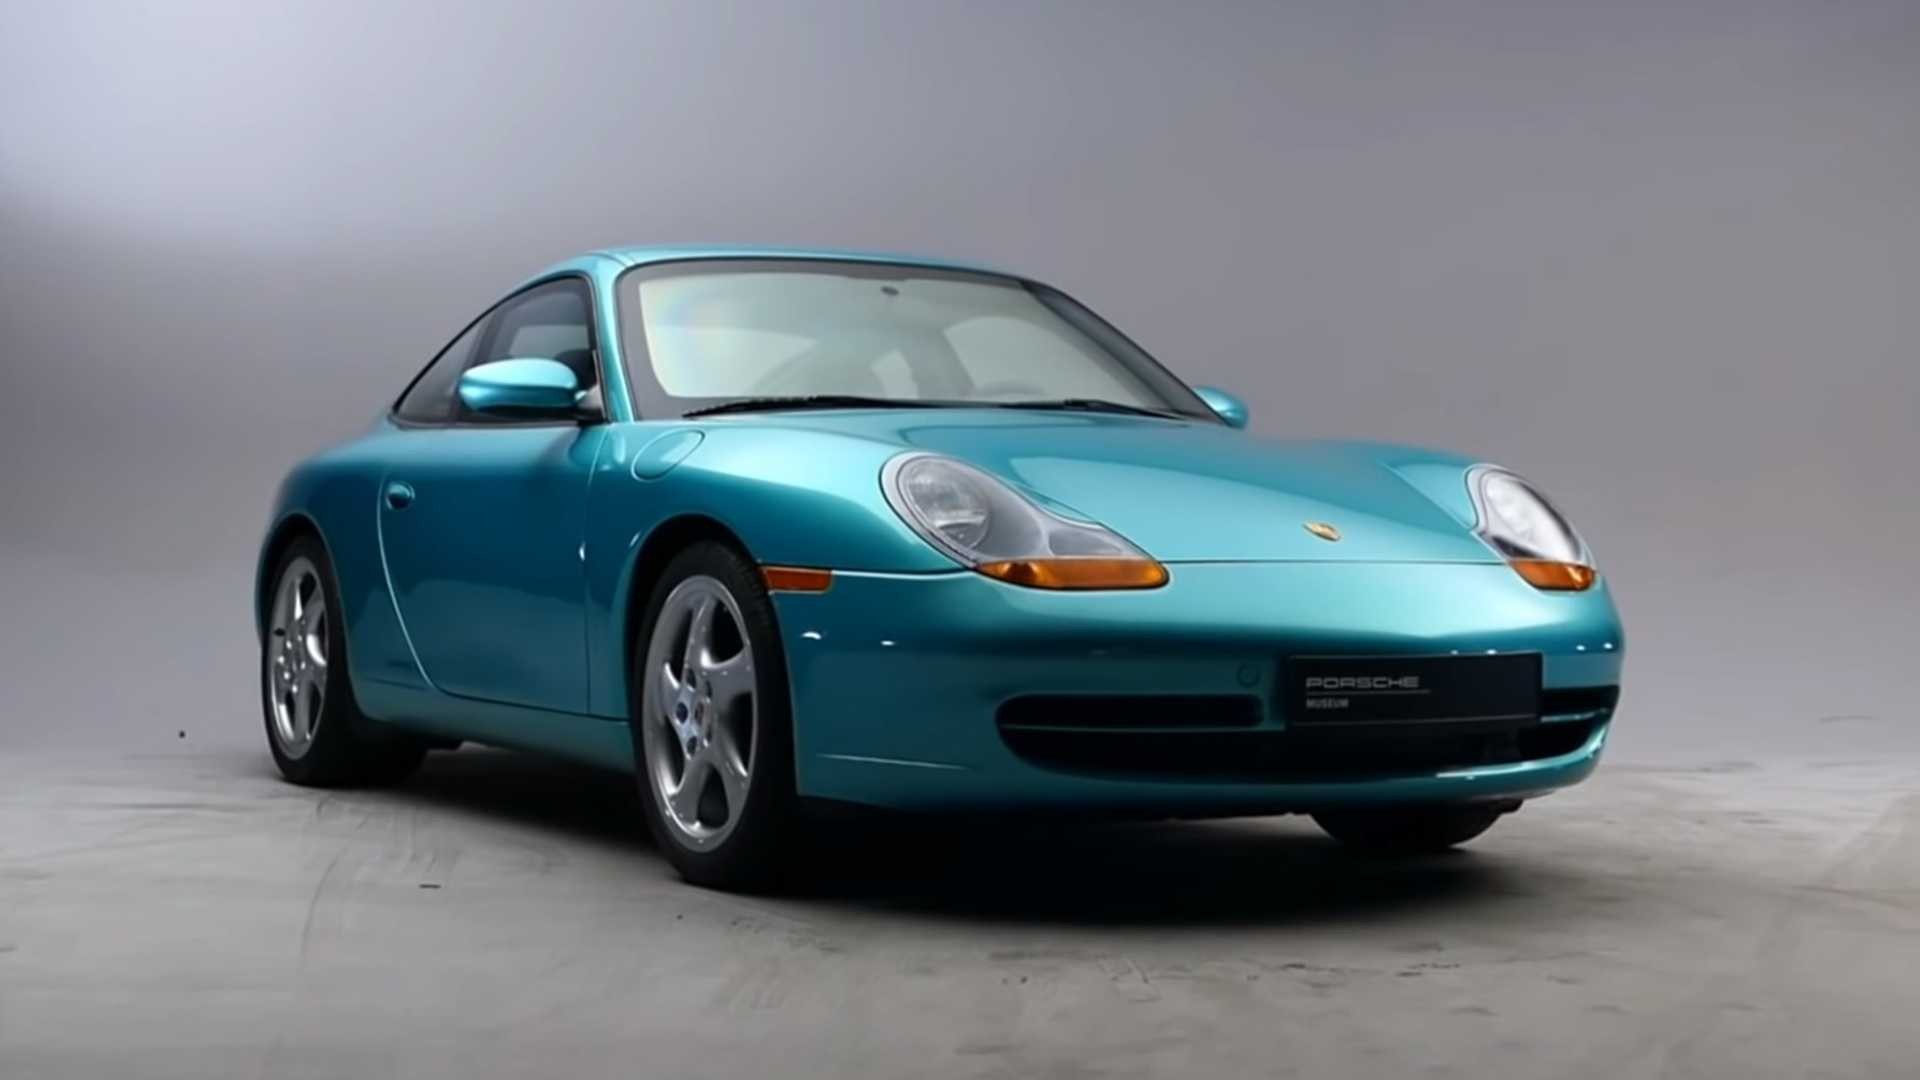 One-Off Bulletproof Porsche 911 Walkaround Video